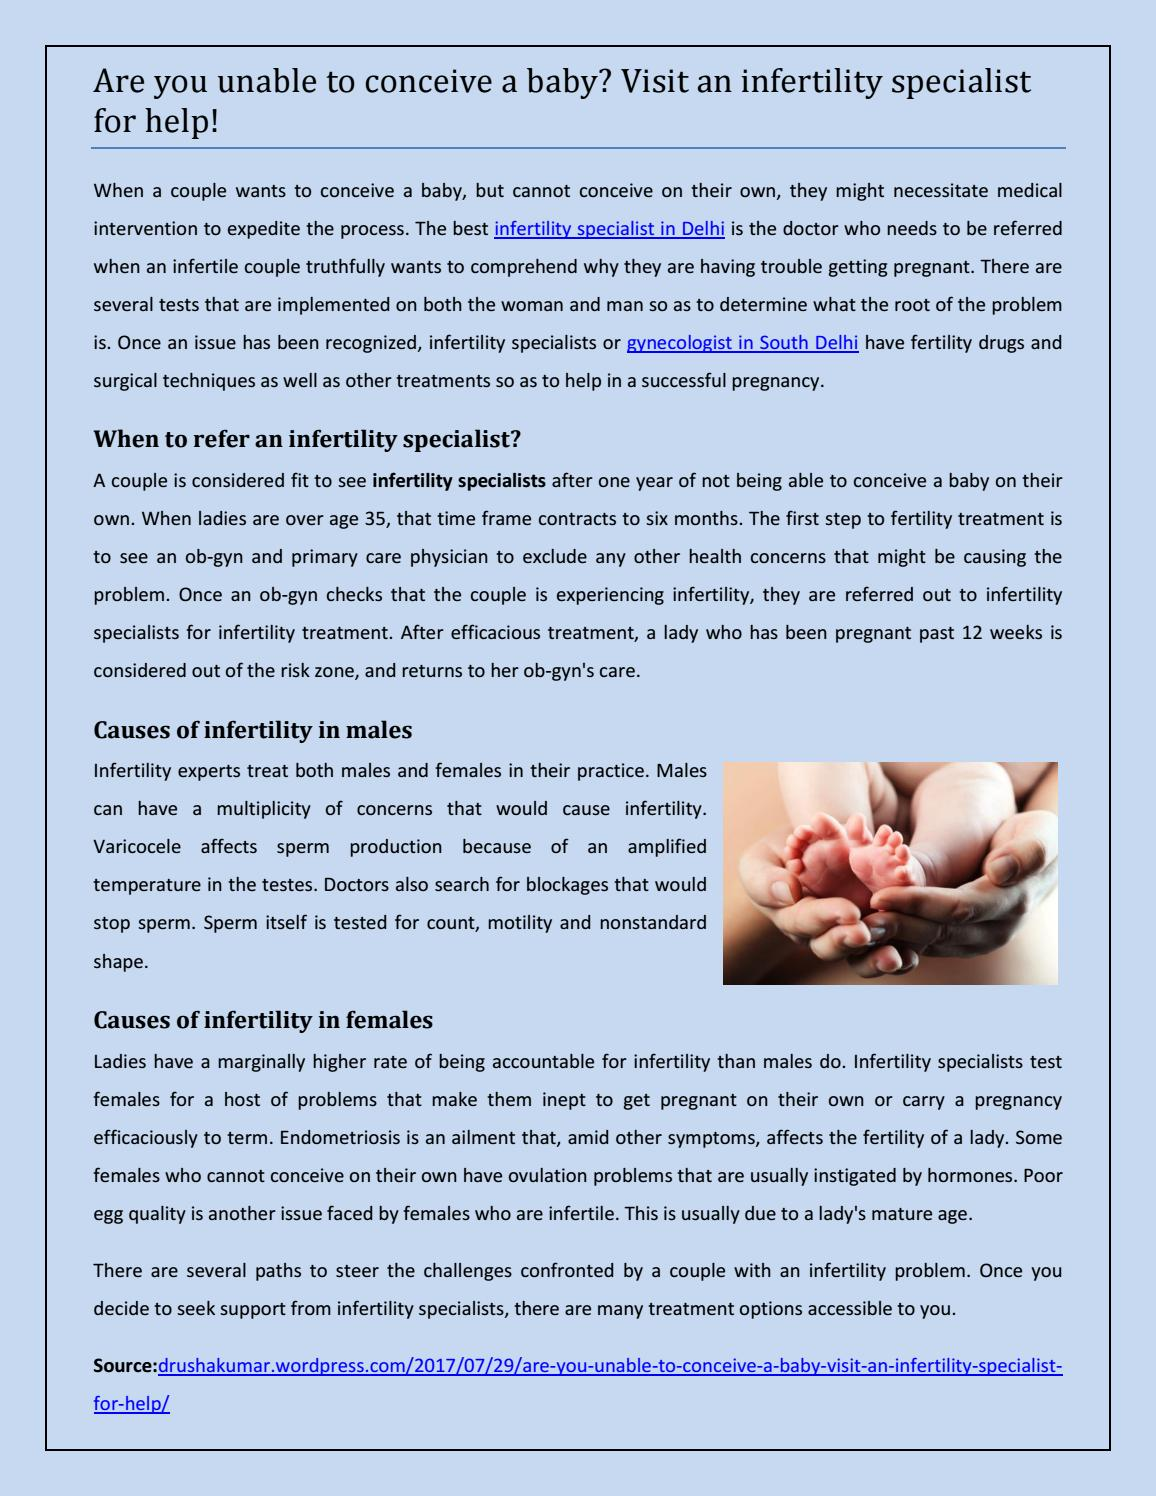 How to Prevent Infertility Problems from Affecting Your Marriage How to Prevent Infertility Problems from Affecting Your Marriage new photo